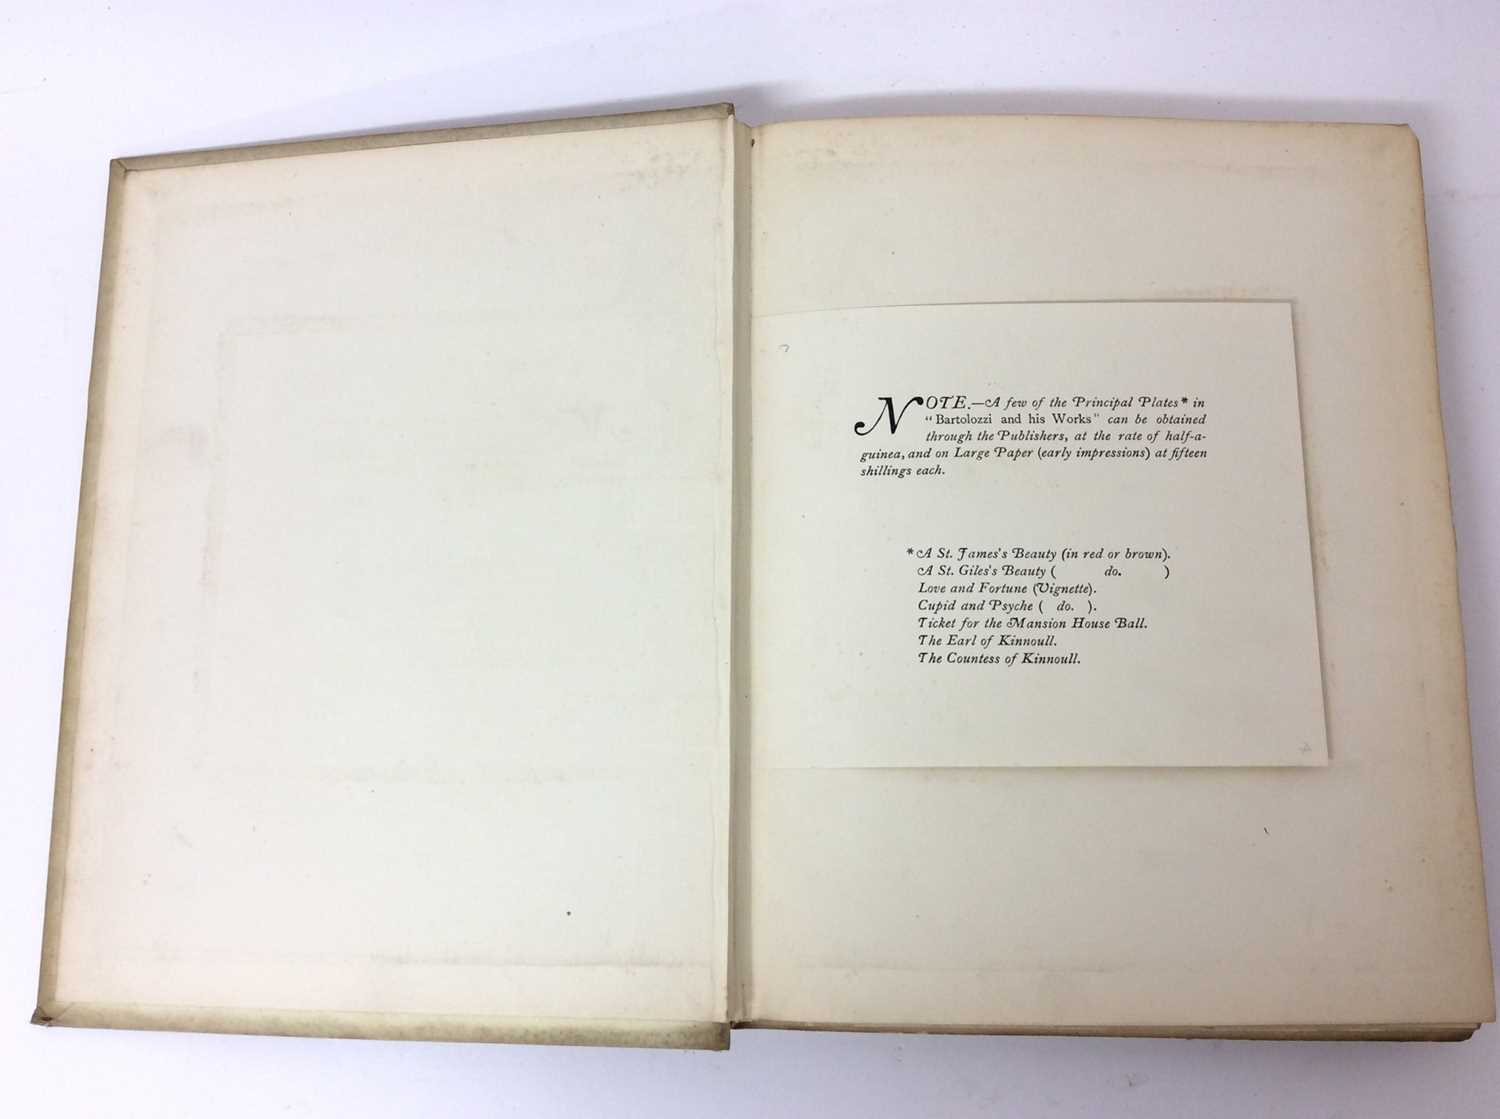 Andrew W. Tuer : Bartolozzi and his works, a biographical and descriptive account, in two volumes - Image 3 of 5